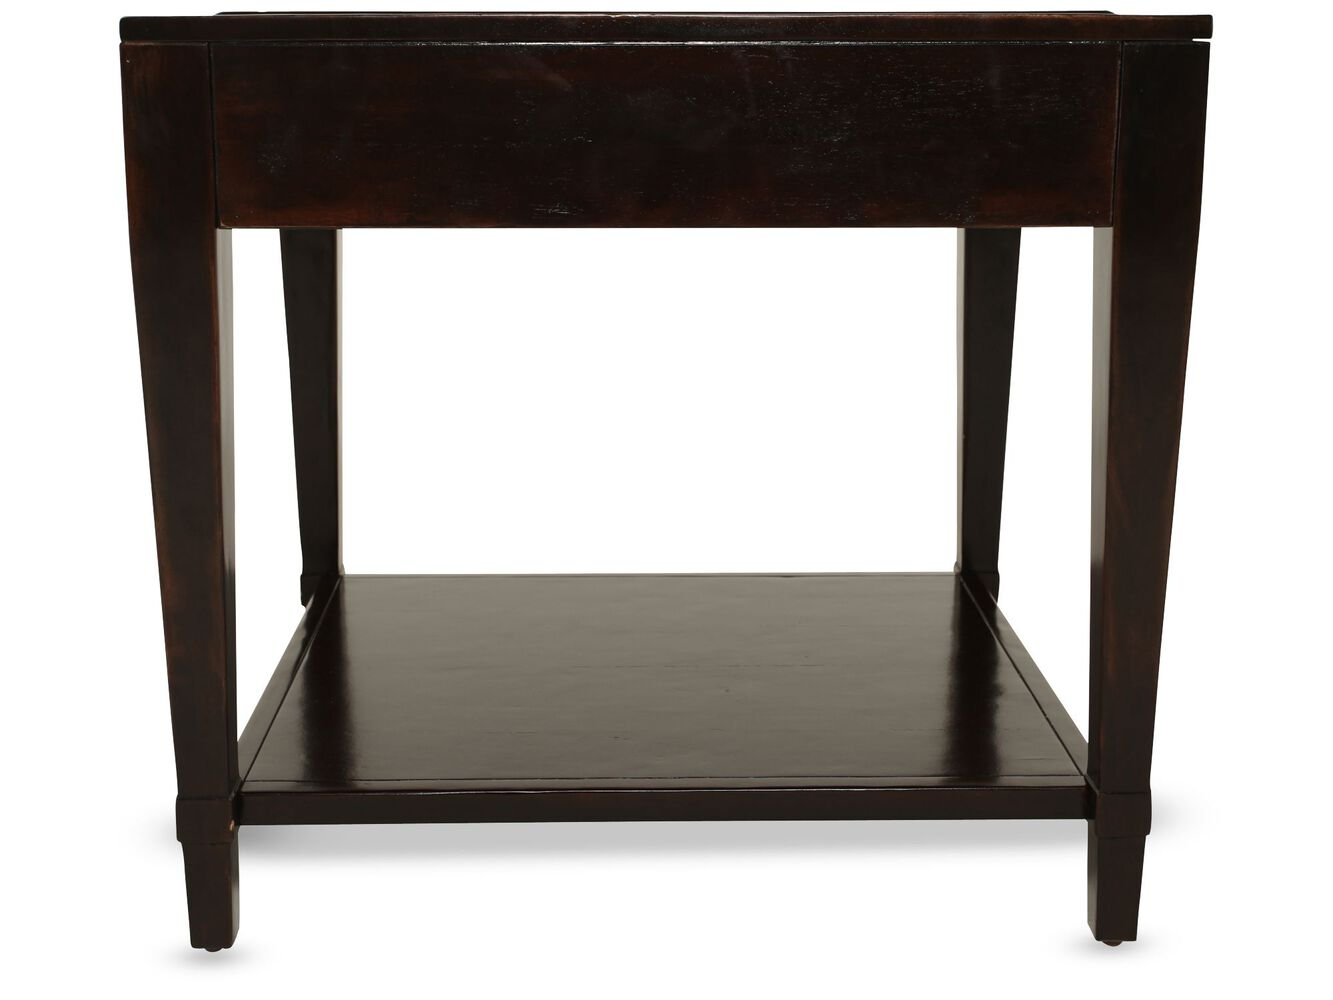 Bernhardt Vintage Patina End Table Mathis Brothers Furniture : BHT 322047112B 3 from mathisbrothers.com size 1333 x 1000 jpeg 60kB